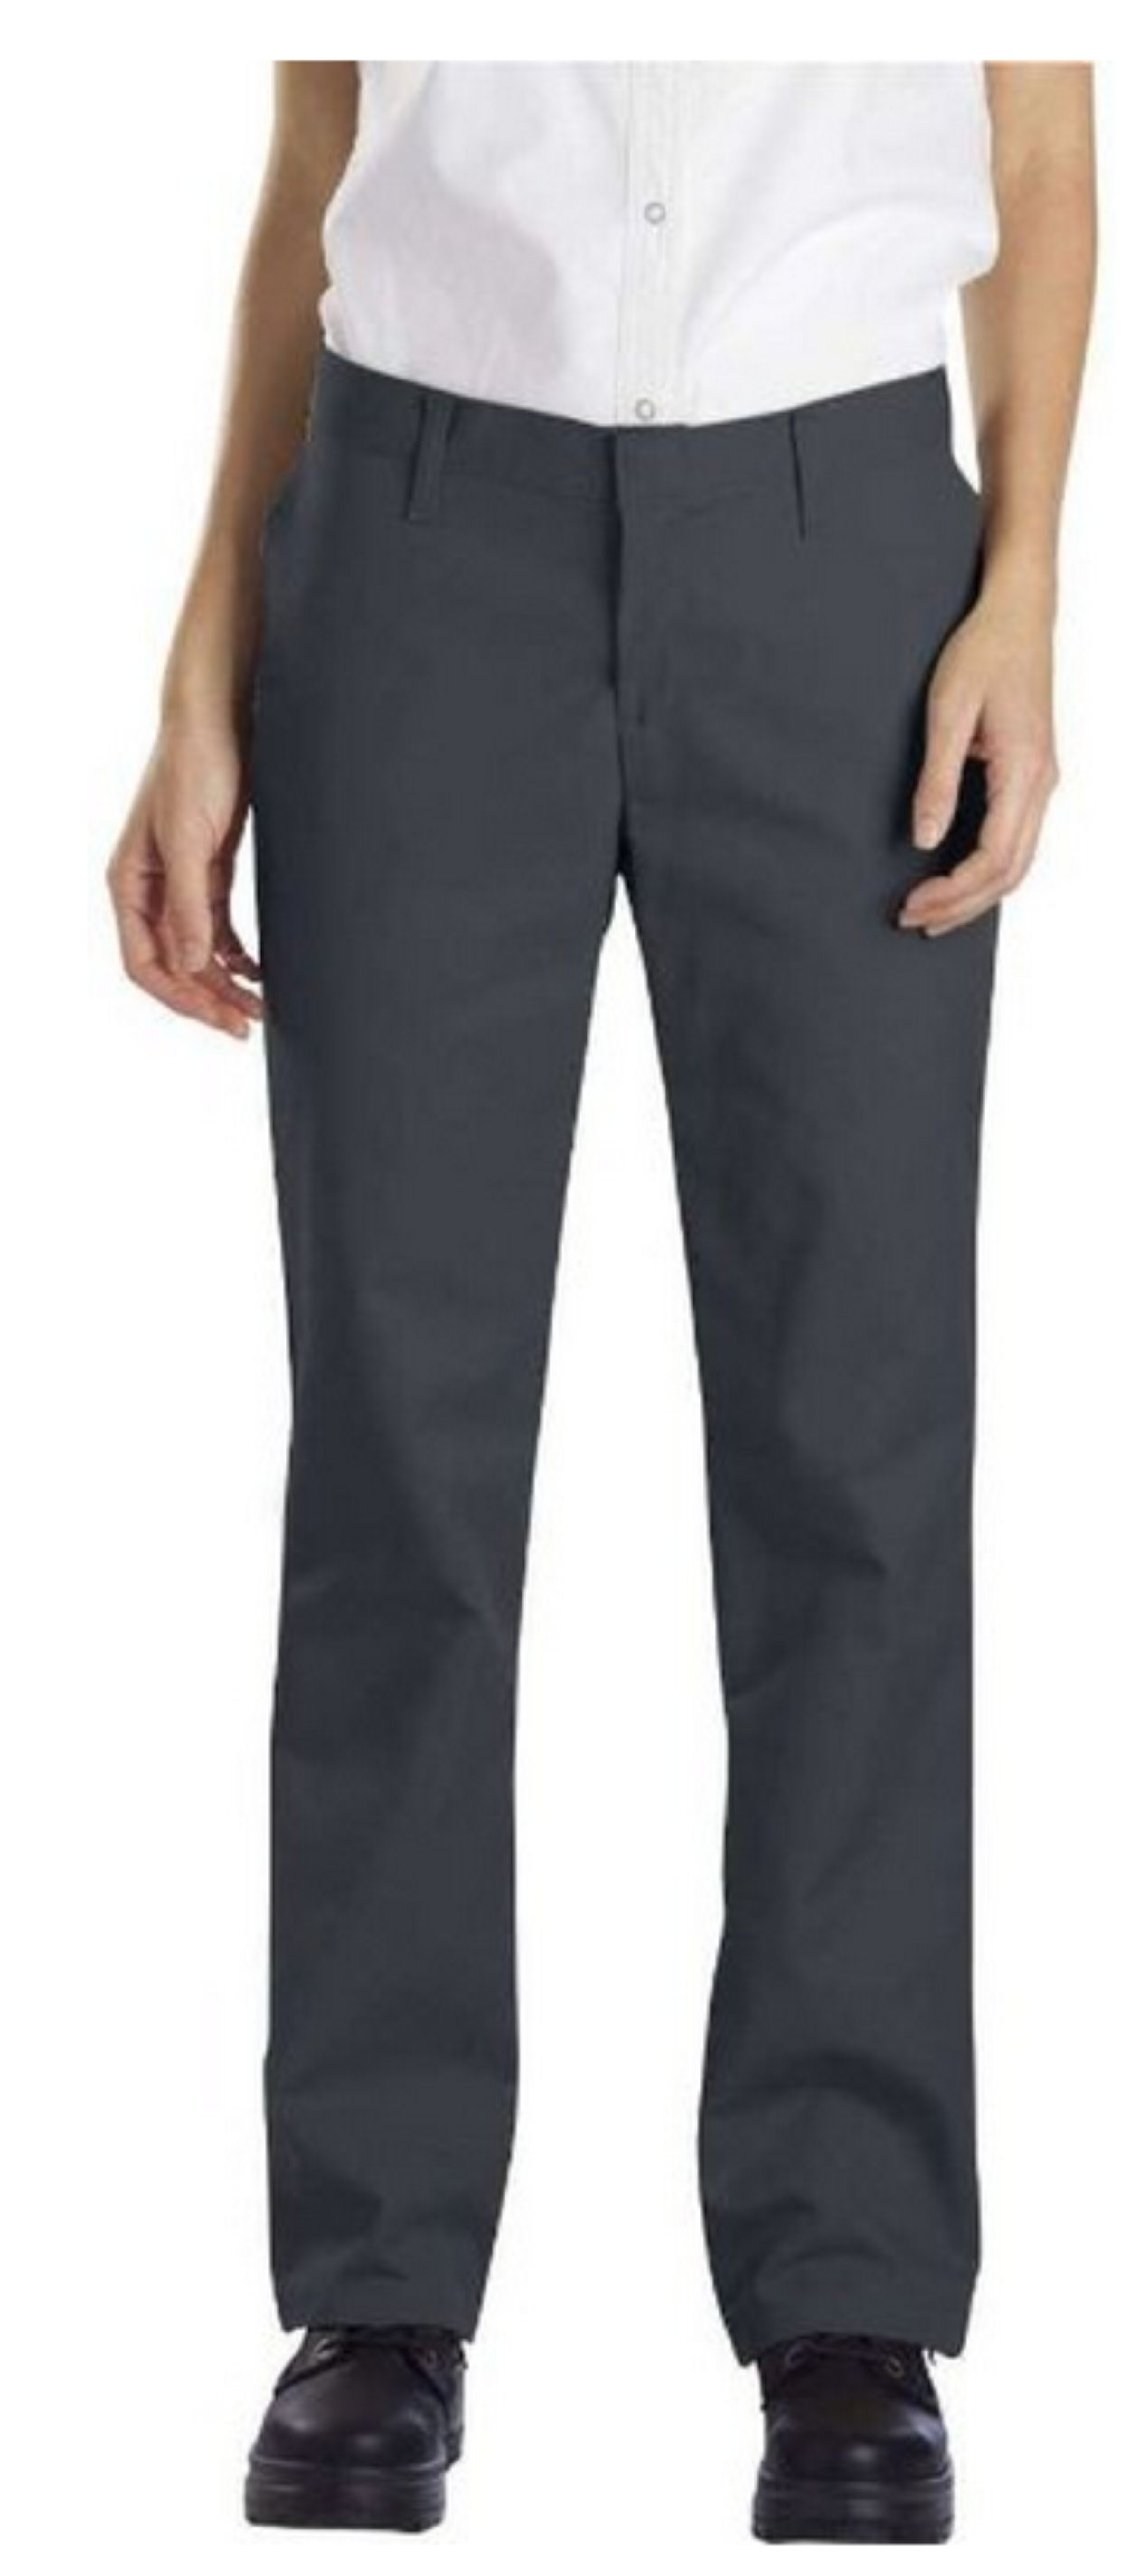 Dickies Occupational Workwear FP322CH 20 RG Polyester/Cotton Relaxed Fit Women's Industrial Flat Front Pant with Straight Leg, 20 Regular, 31-1/2'' Inseam, Charcoal by Dickies Occupational Workwear (Image #1)